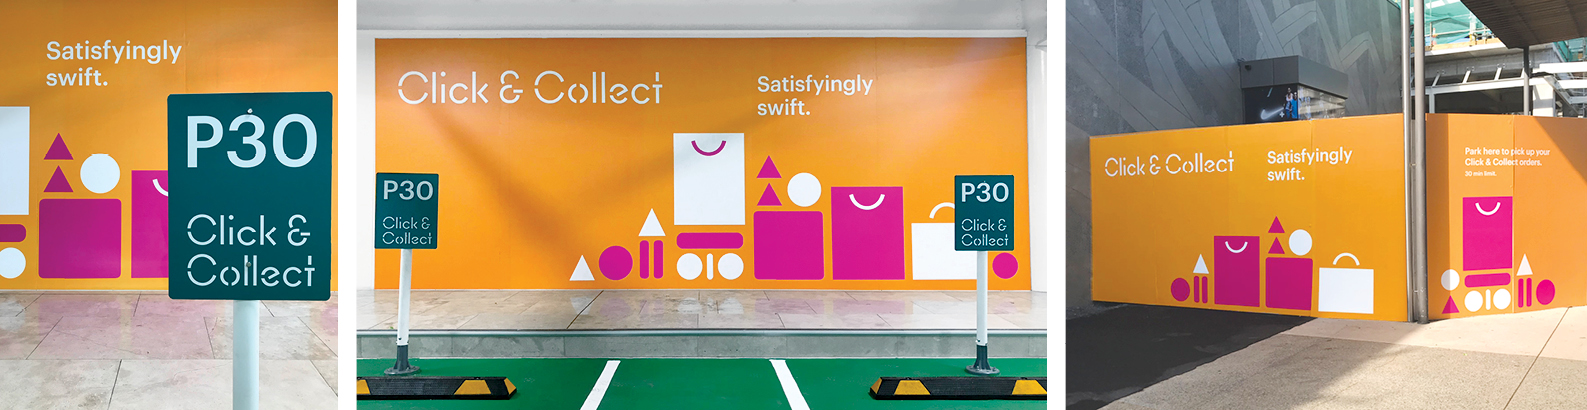 Sylvia Park Click an Collect Brand Illustration Retail Environment Graphics